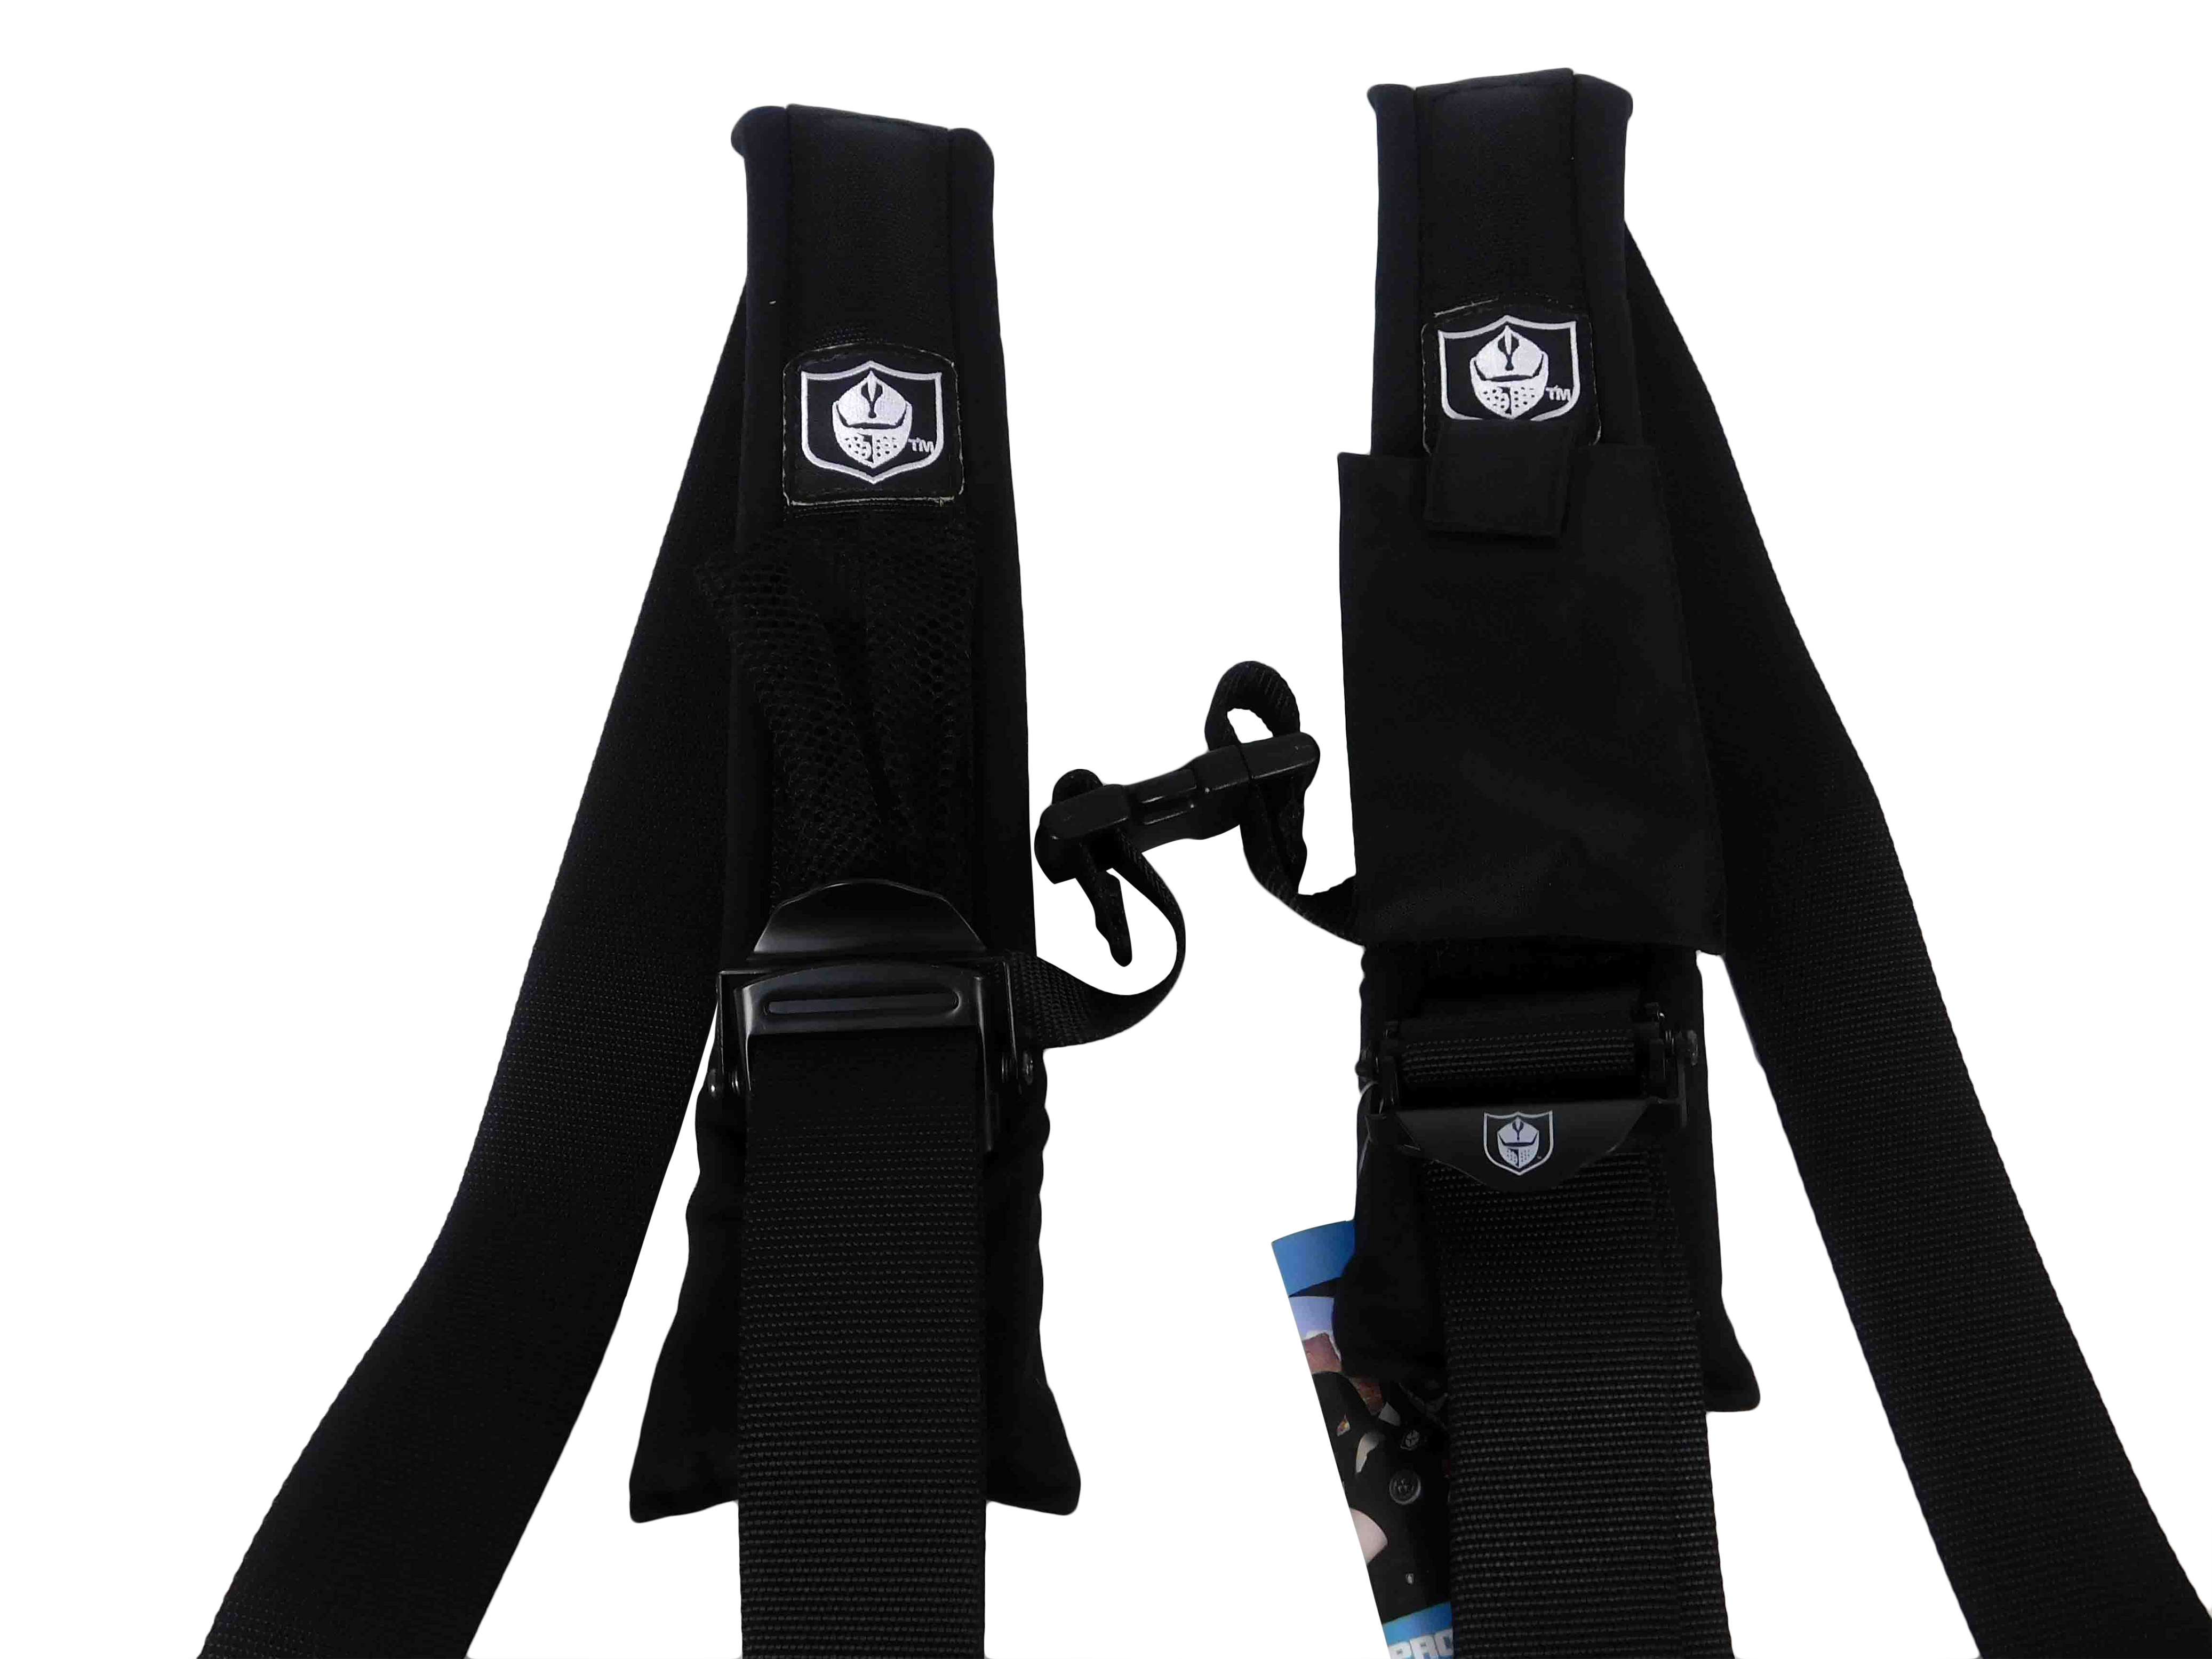 Pro-Armor-A114220-Black-4-Point-Harness-2inch-Straps-image-2